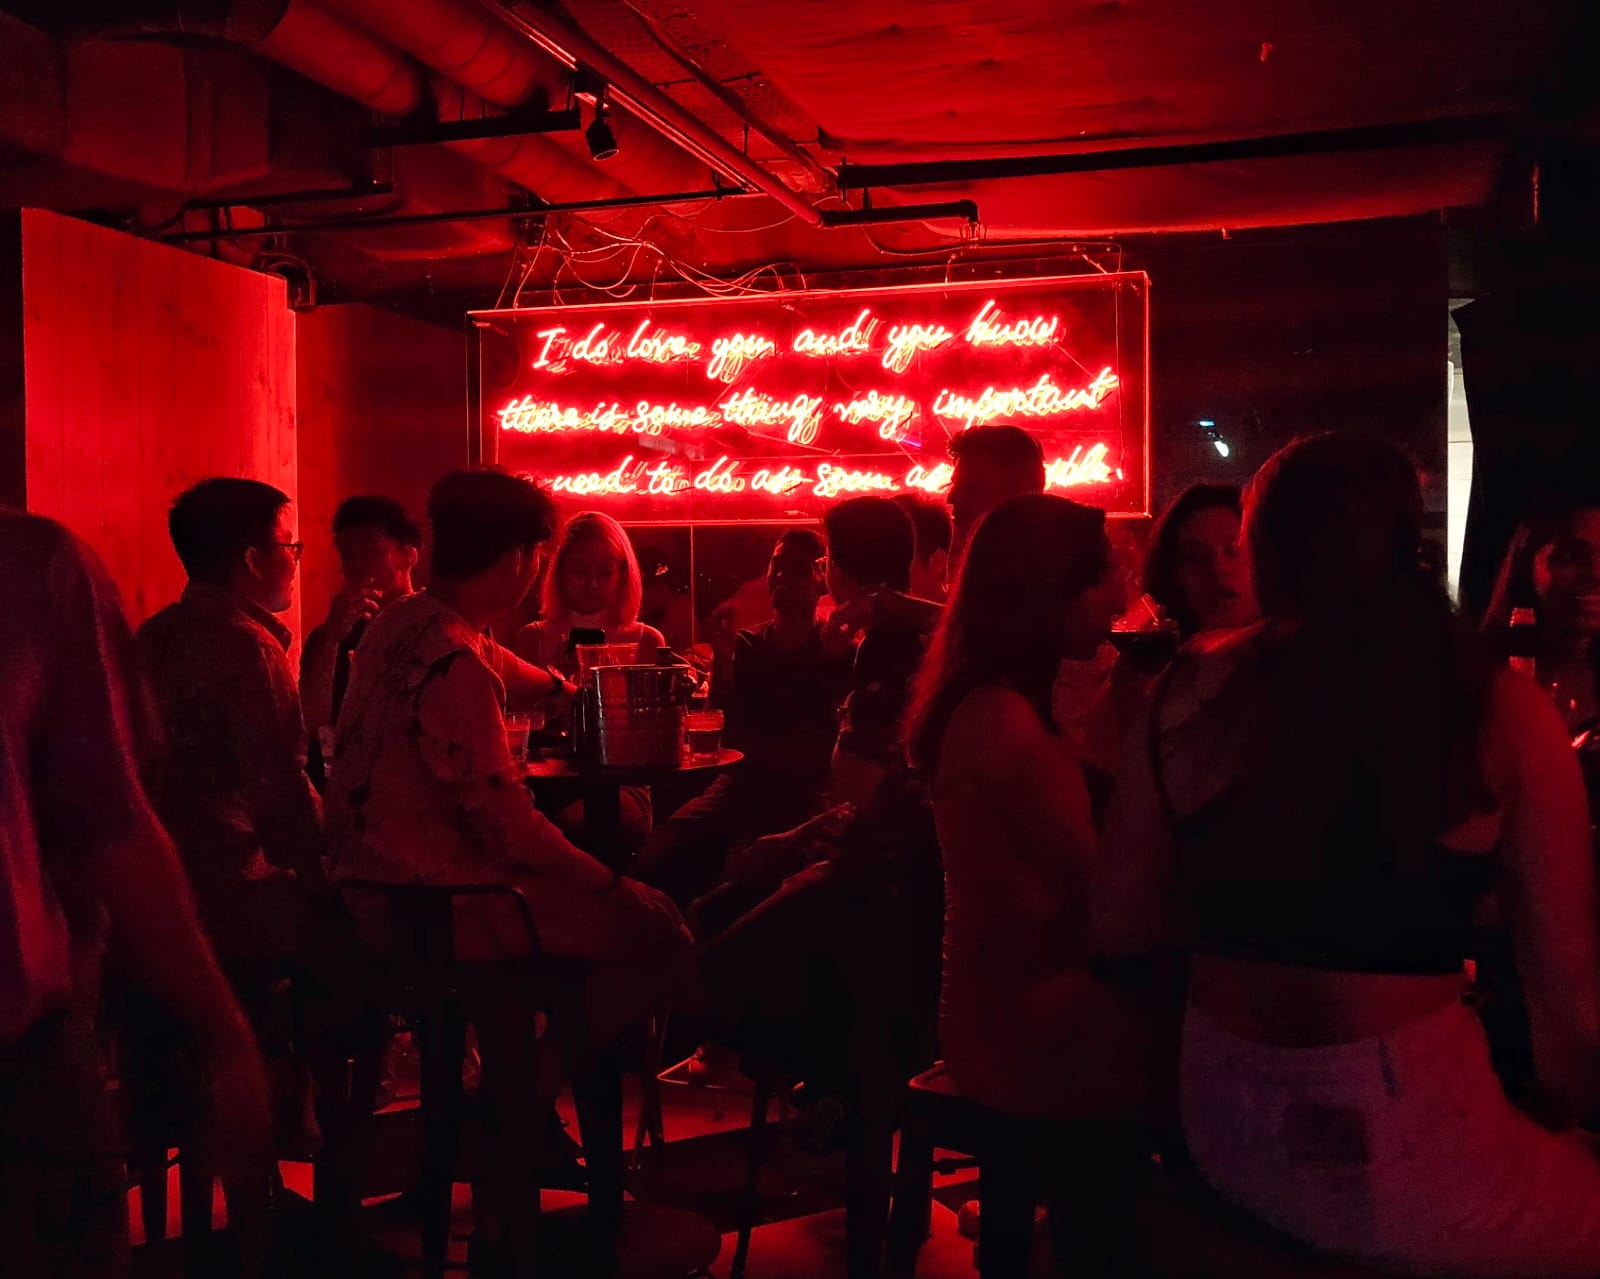 As If Covid Never Happened: Witnessing The Loneliness Pandemic In A Nightclub